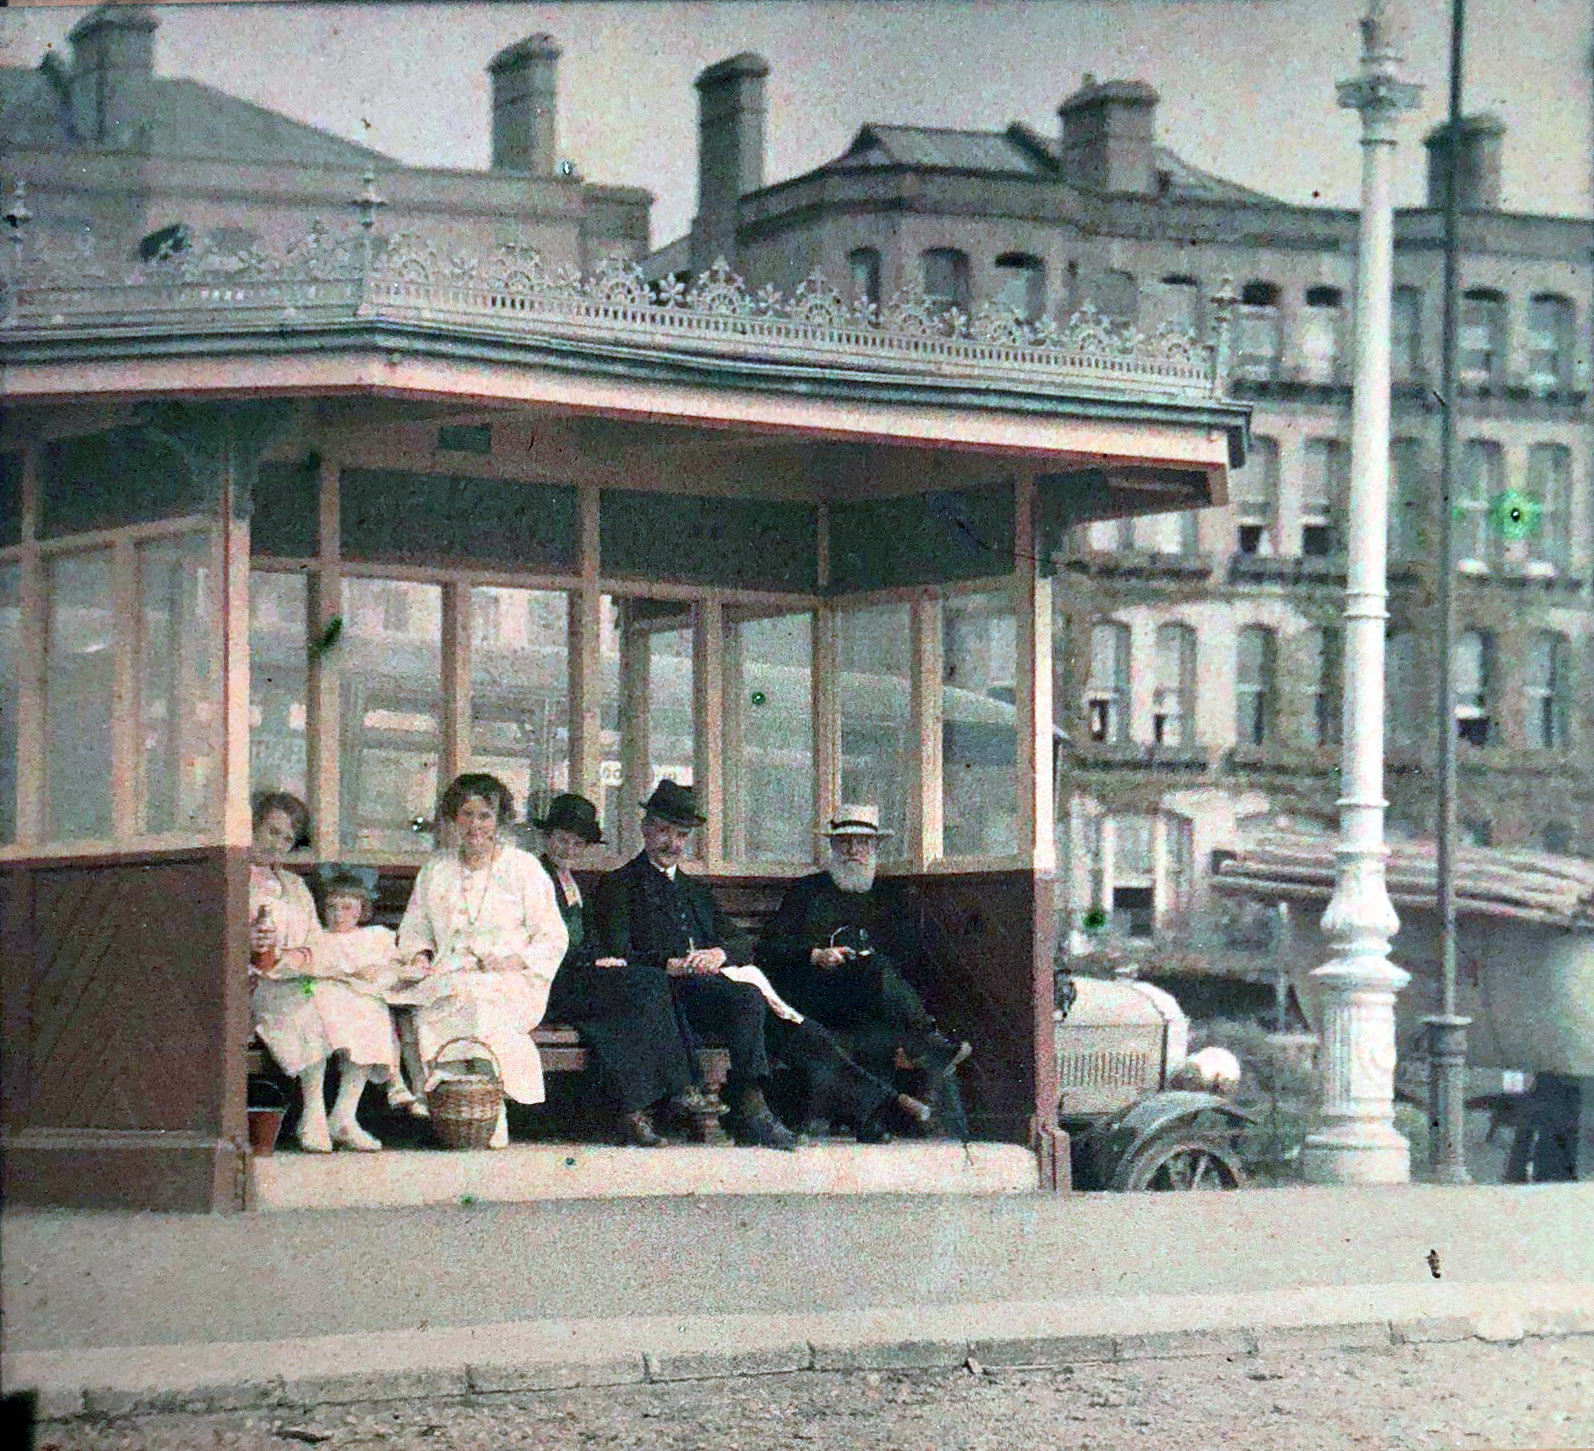 1910s Paris Bus stop